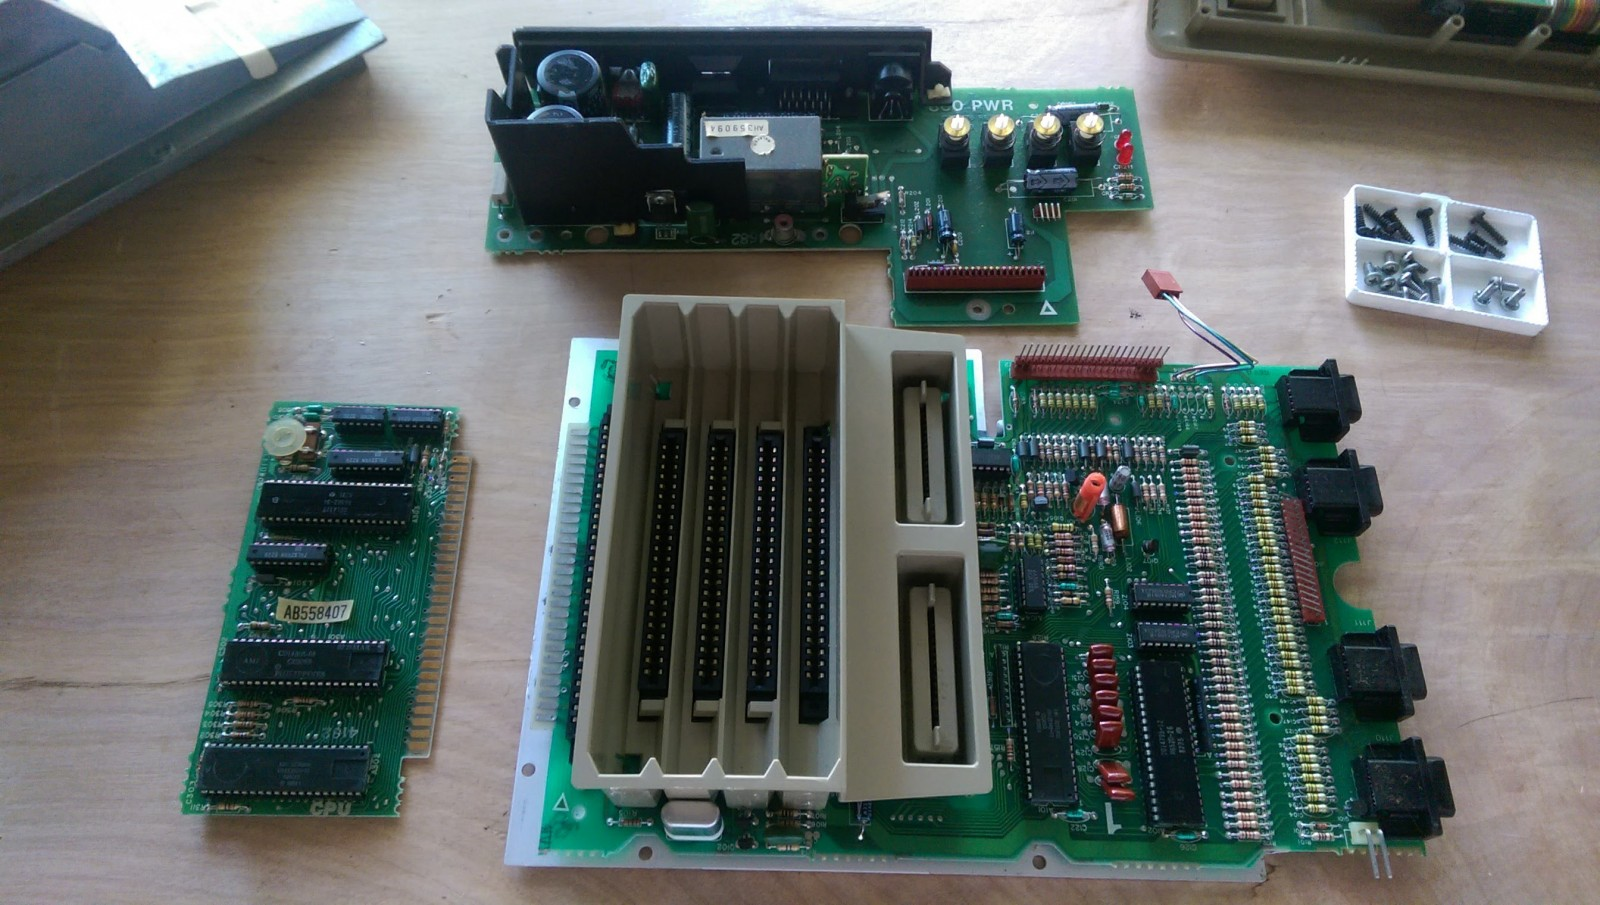 Overview of all components